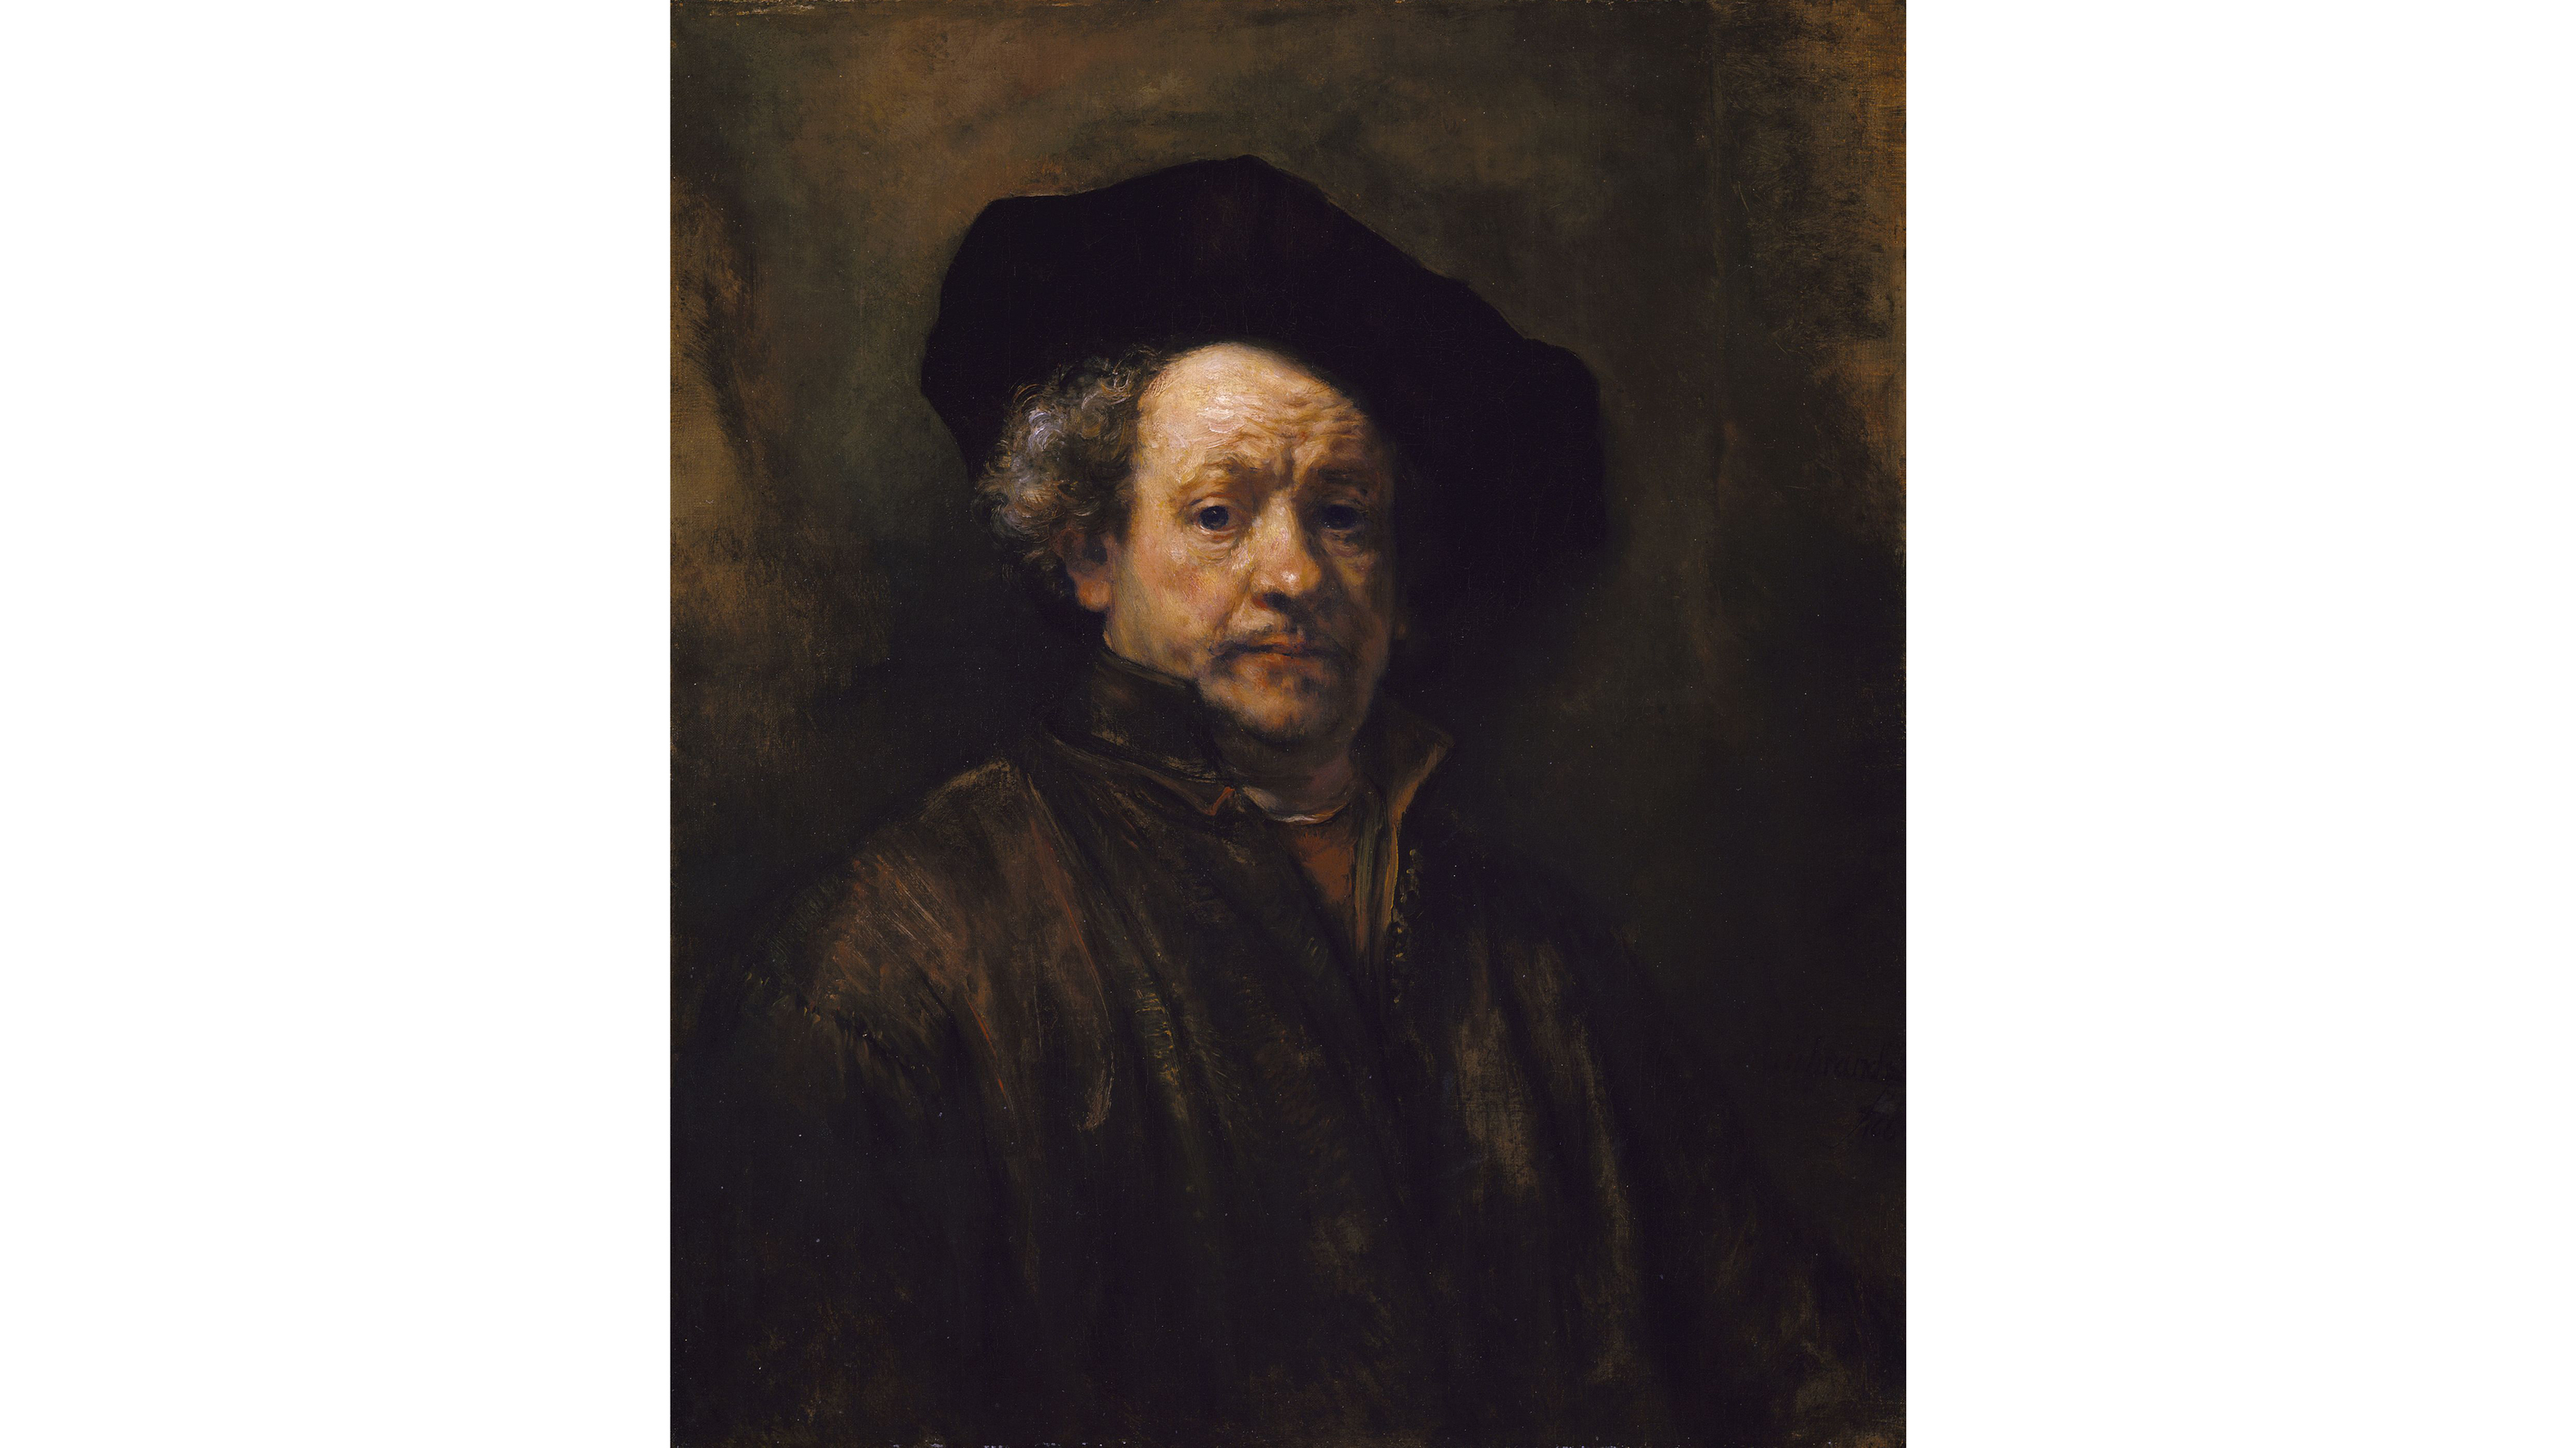 rembrandt muslim single men Stunning 17th century original rembrandt etchings for sale from the collection of masterworks fine art gallery his works are amongst the most sought after and valuable old master etchings.